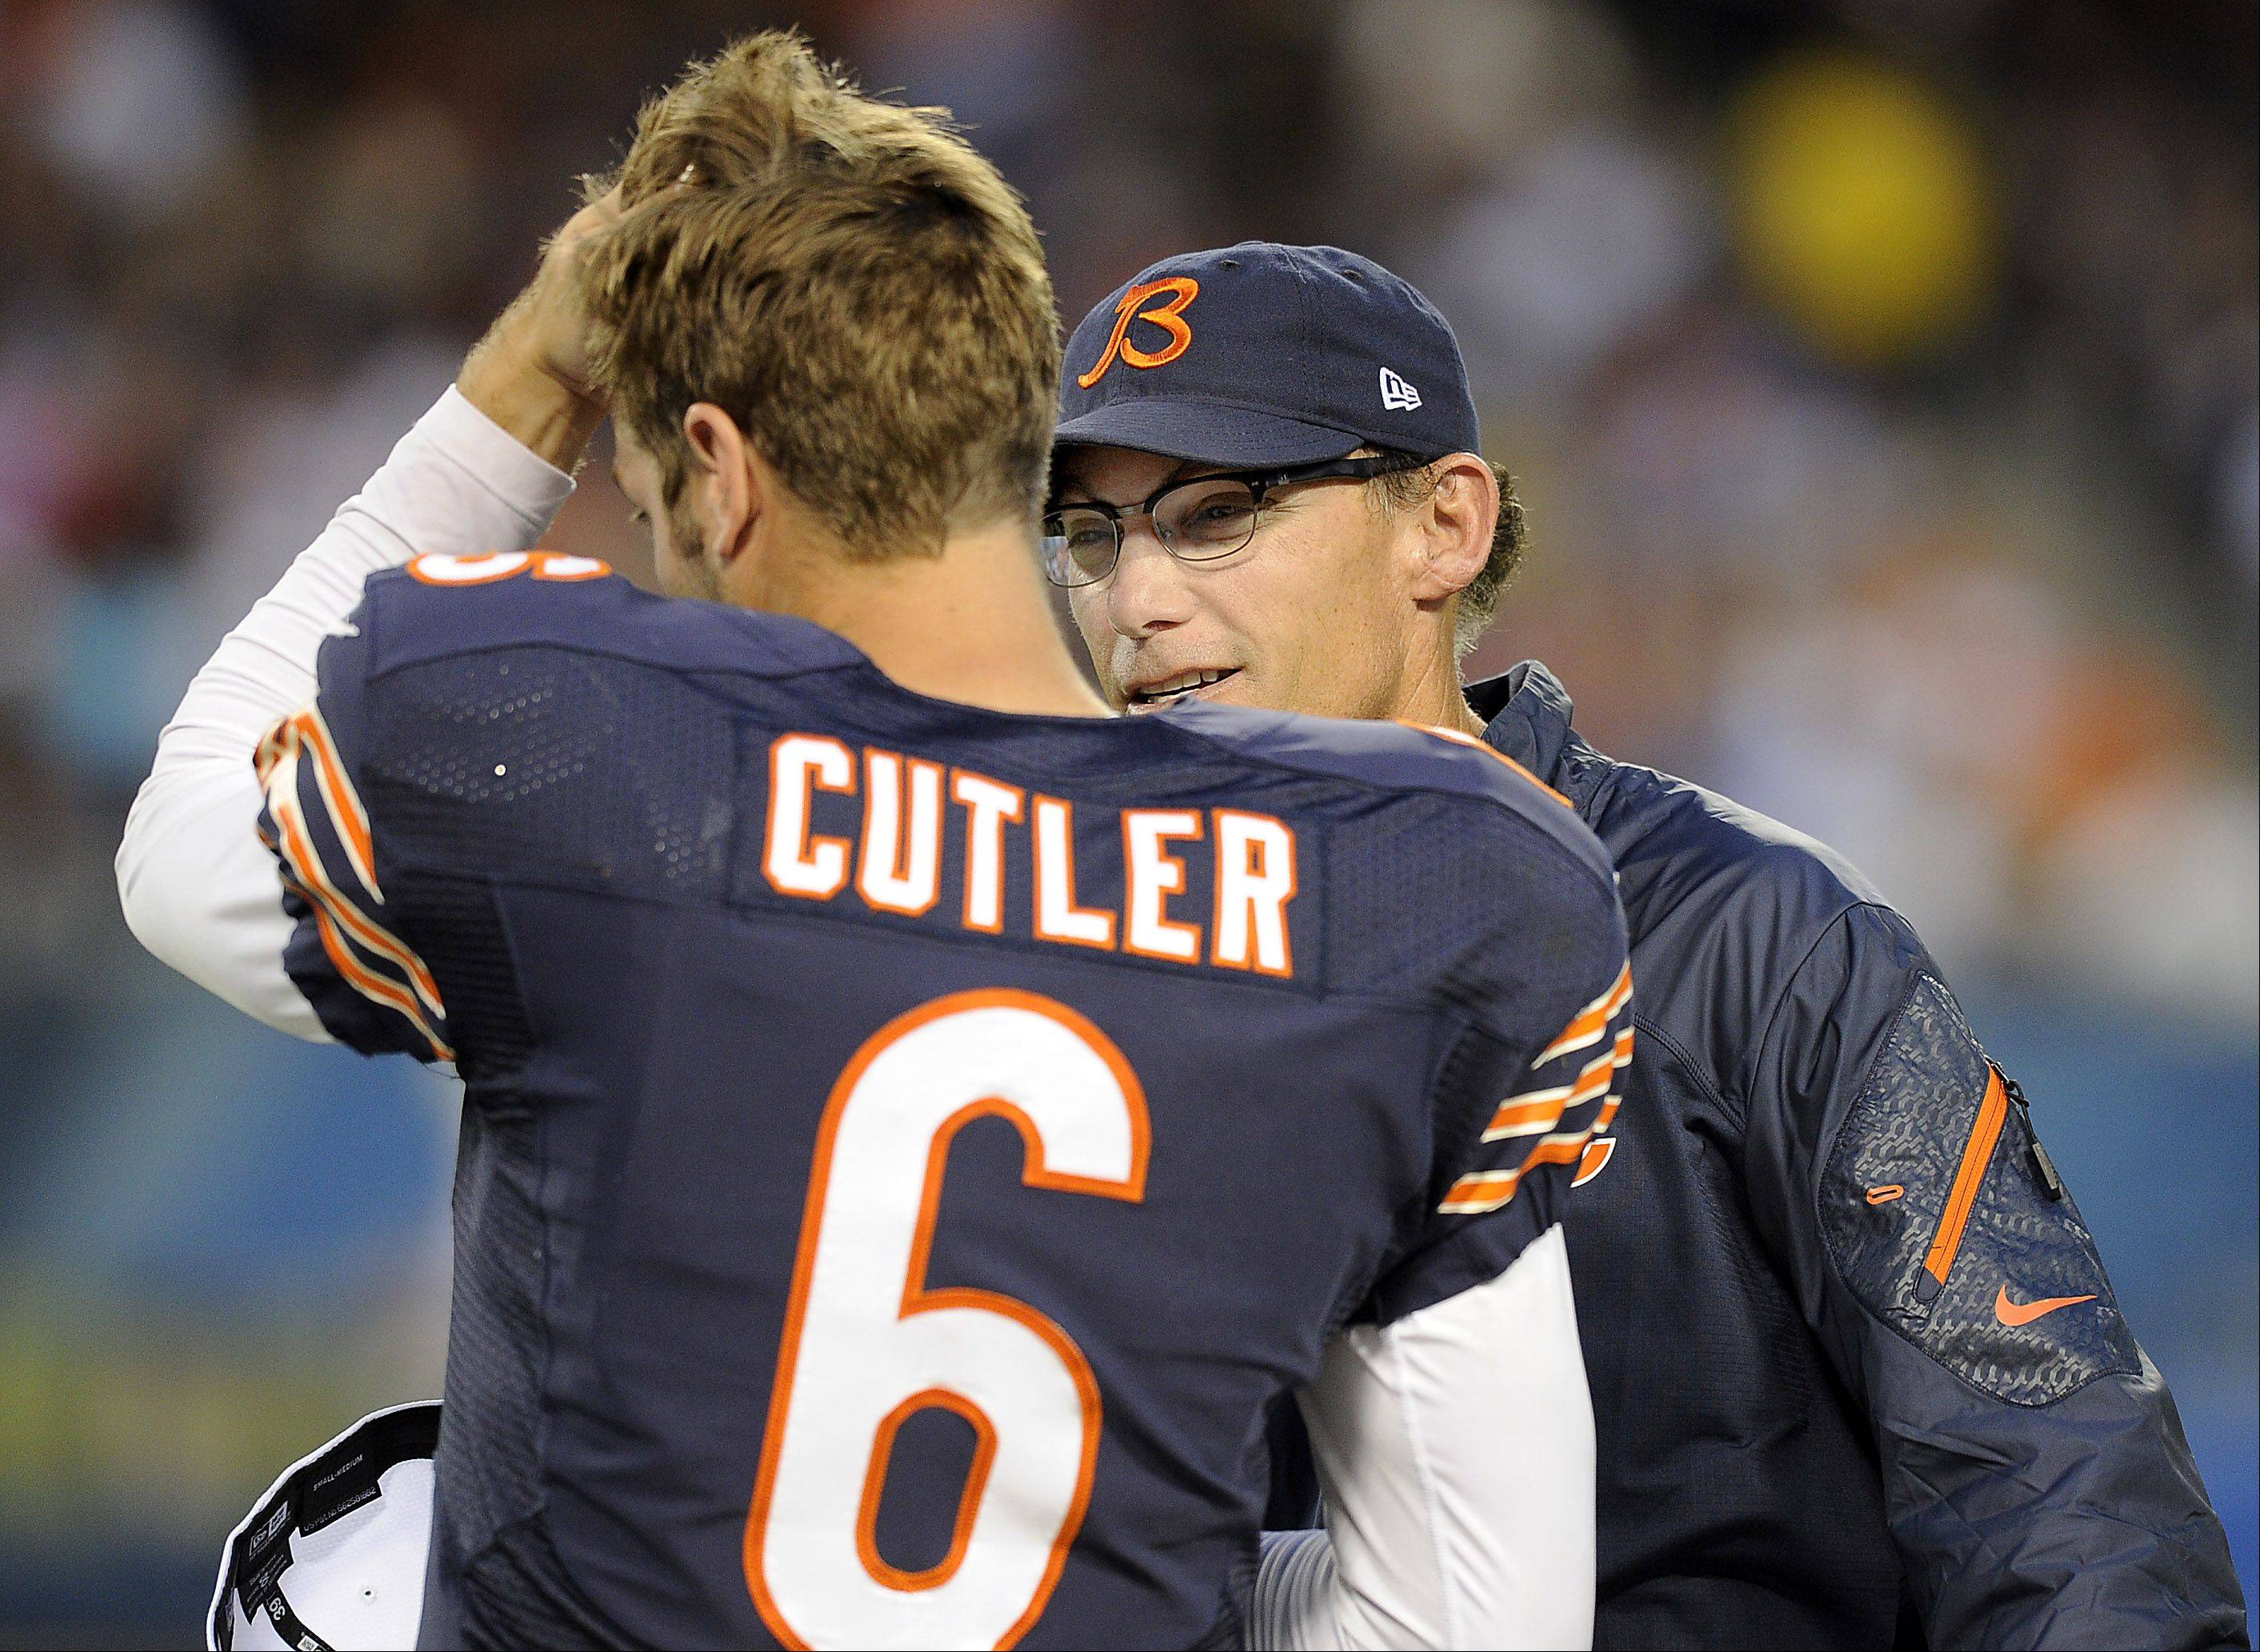 While Bears head coach Marc Trestman expects a big season from quarterback Jay Cutler, Bob LeGere says four other veterans also must have good years for the team to make the playoffs: Brandon Marshall, Julius Peppers, Charles Tillman and Lance Briggs.